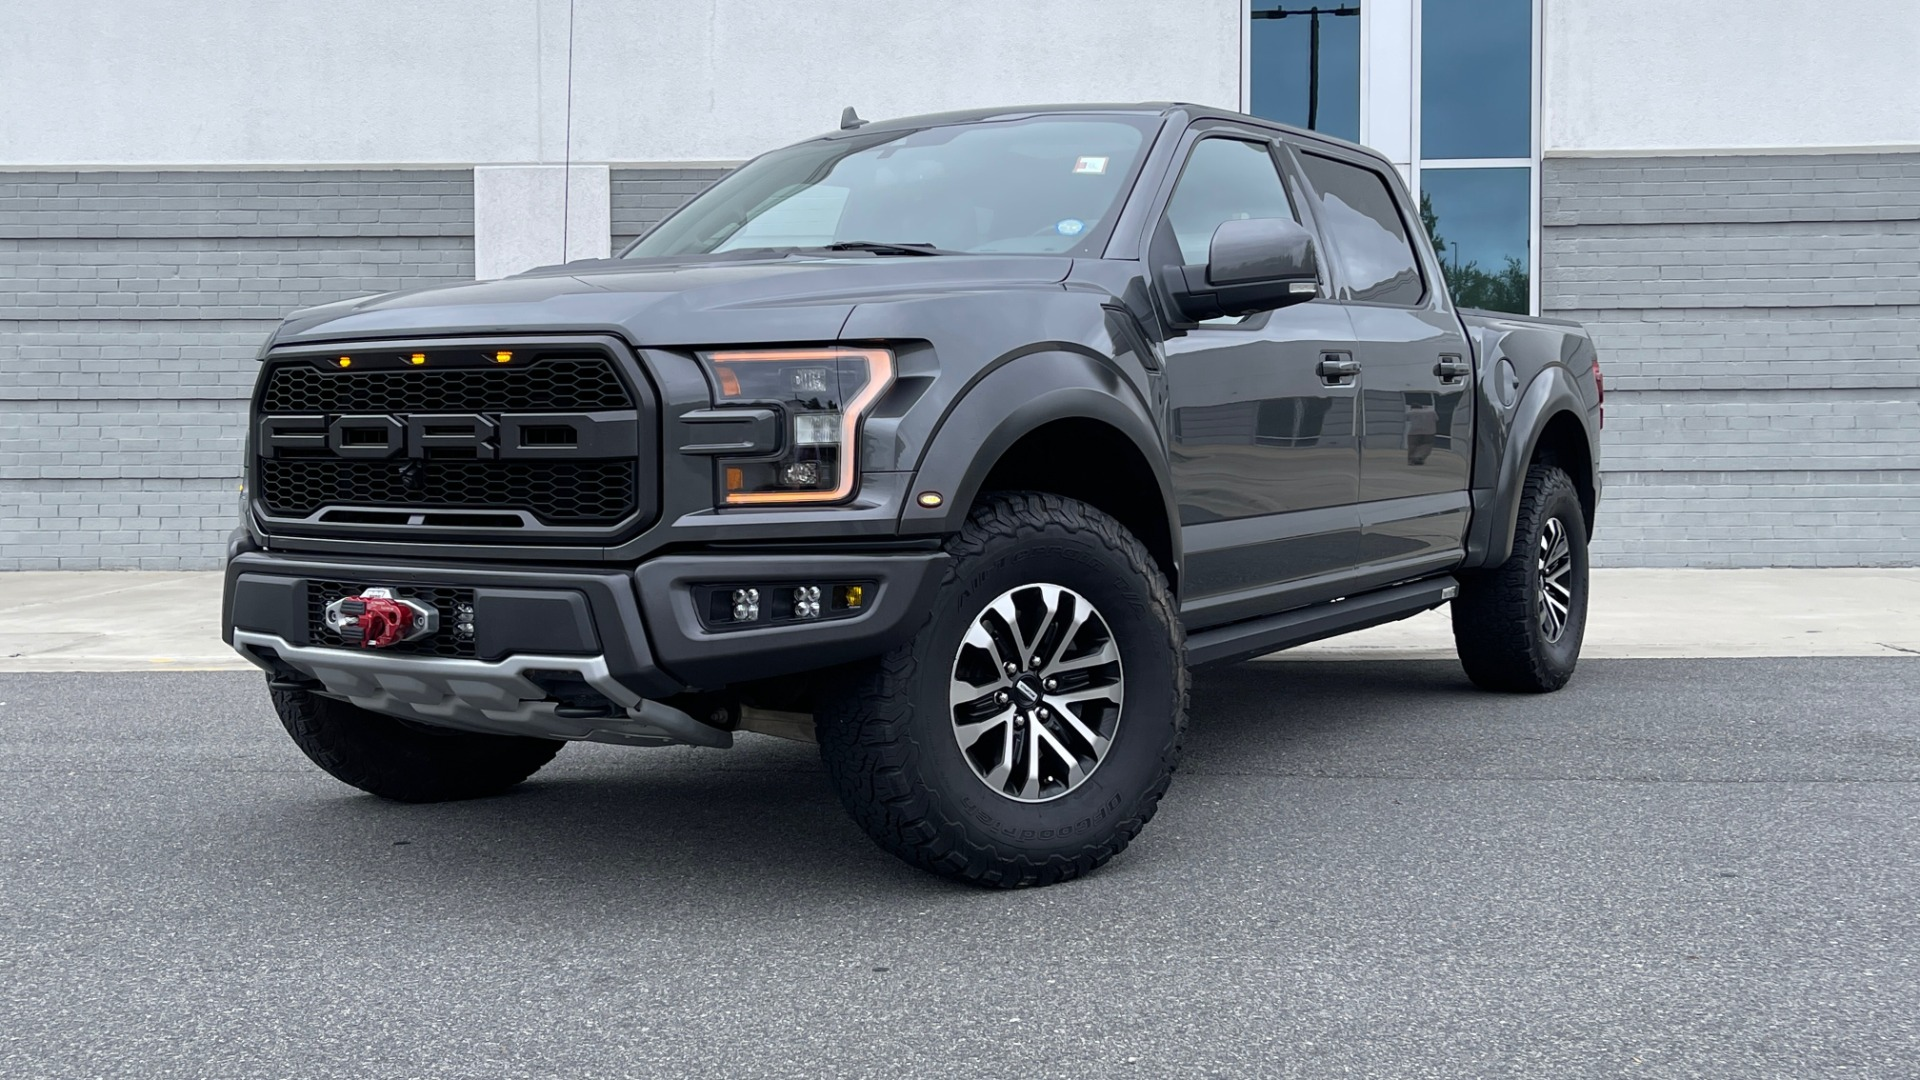 Used 2020 Ford F-150 RAPTOR 4X4 SUPERCREW / NAV / B&O SOUND / SUNROOF / REARVIEW for sale Sold at Formula Imports in Charlotte NC 28227 1